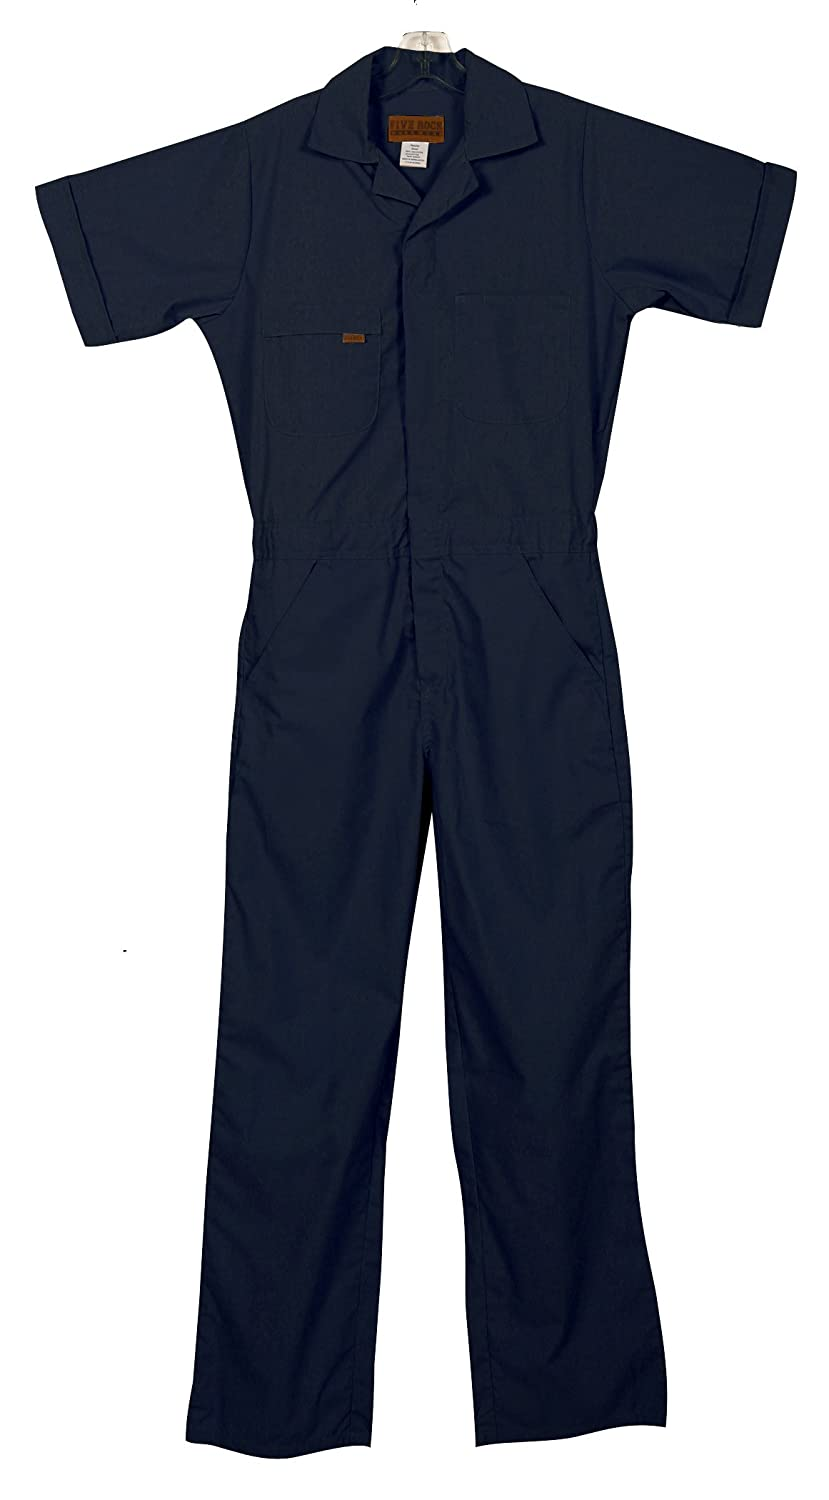 Rosie the Riveter Costume & Outfit Ideas Five Rock Poplin Short Sleeve Unlined Coveralls Regular Fit $42.39 AT vintagedancer.com